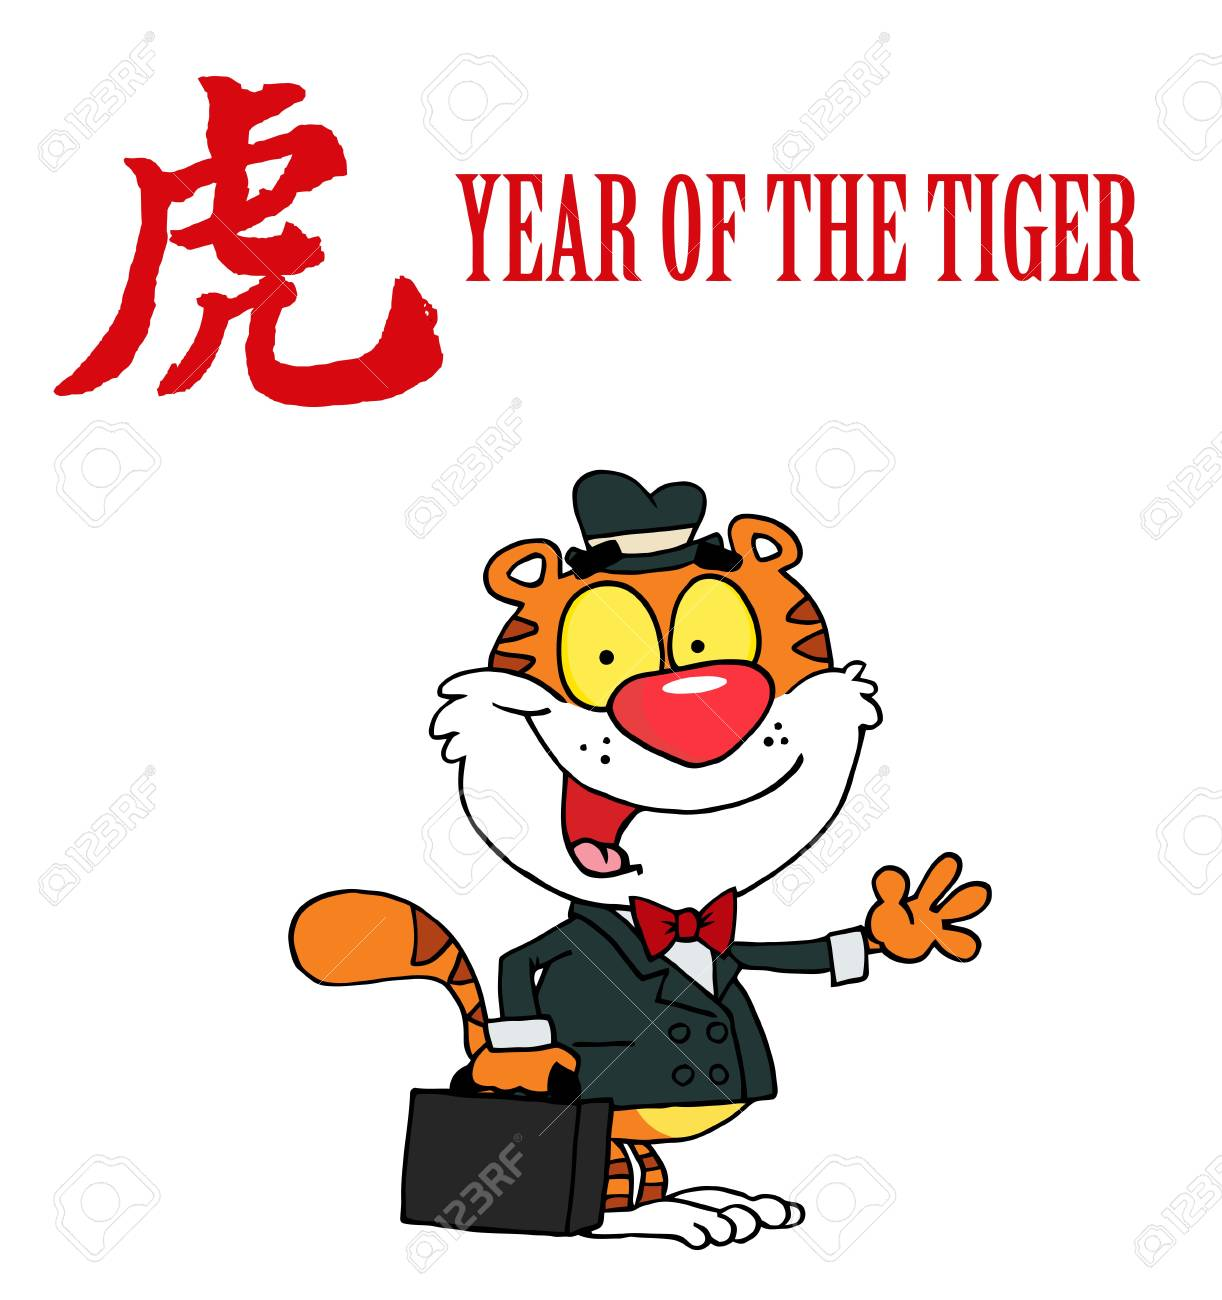 Friendly Business Tiger With A Year Of The Tiger Chinese Symbol